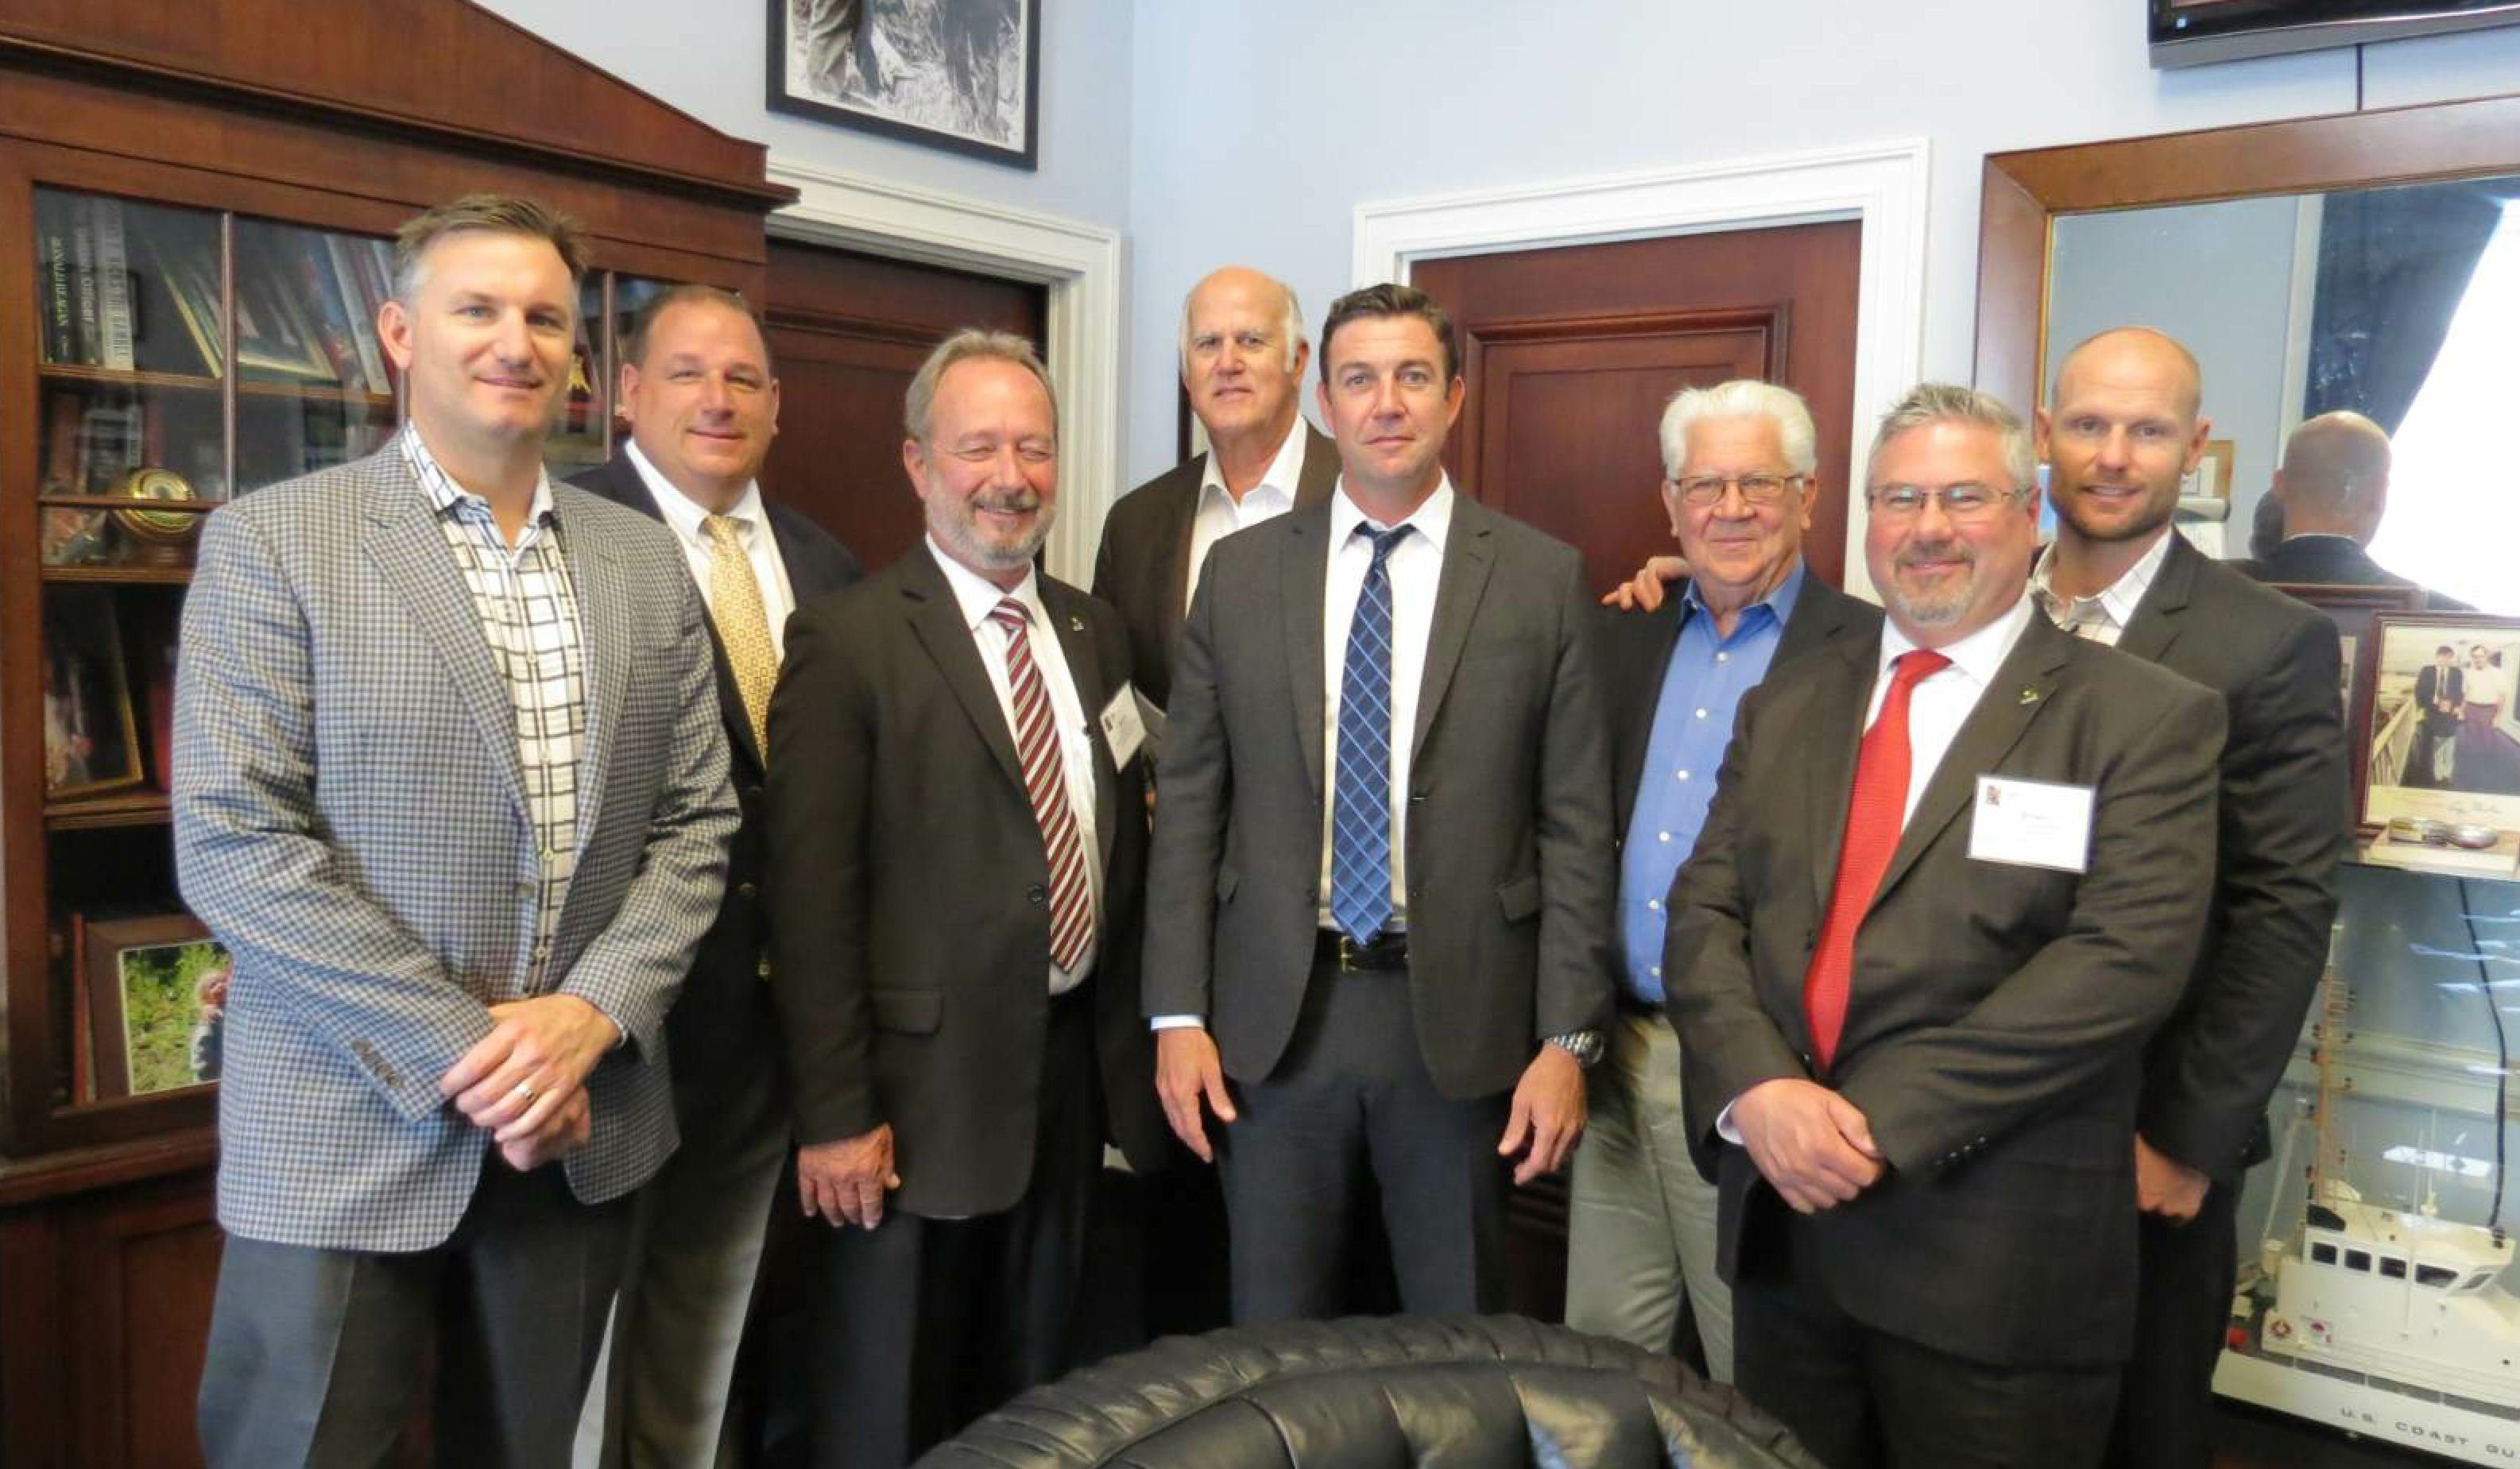 "The CalAPA delegation poses with U.S. Rep. Duncan Hunter (CA-50) during the Transportation Construction Coalition ""fly-in"" held March 17 and 18, 2017, in Washington, D.C. Pictured, from left to right, are Don L. Daley III, ATP General Engineering (CalAPA Legislative Committee Chair); Scott Metcalf, Ergon; Steve Ward, Pavement Recycling Systems; Don L. Daley Jr., California Commercial Asphalt; Hunter; Len Nawrocki, Valero (CalAPA 2017 PAC Committee Chair); Brian Handshoe, Kenco Engineering Inc. (2018 CalAPA PAC Committee Chair); and John Greenwood, California Commercial Asphalt (CalAPA Immediate Past Chairman). Photo by the California Asphalt Pavement Association (CalAPA) – used with permission."